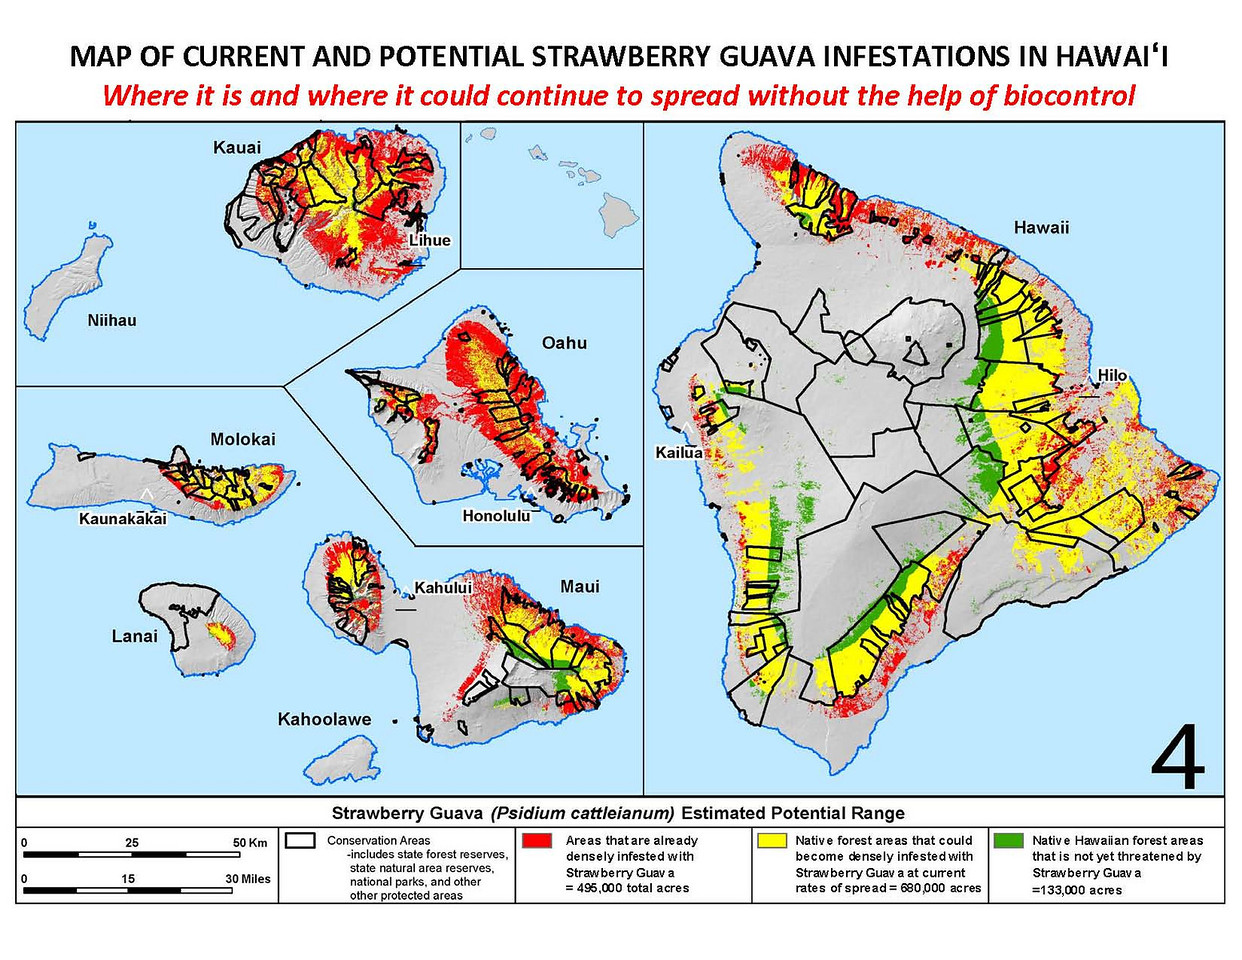 Map of current and potential strawberry guava infestations in Hawaii